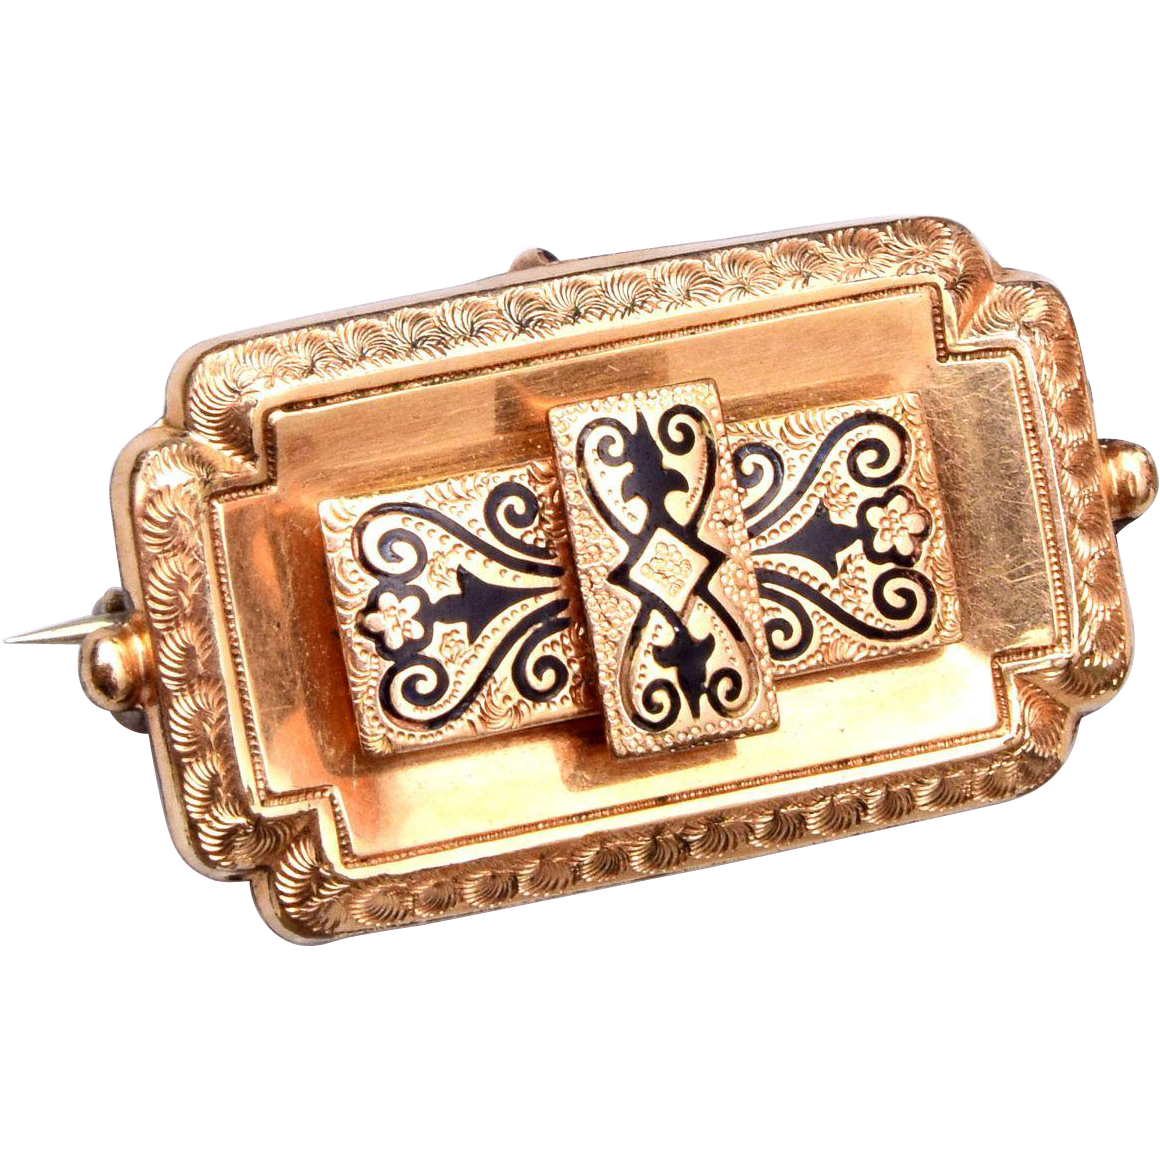 Beautiful Taille D'Epergne Gold Filled Brooch or Watch Pin